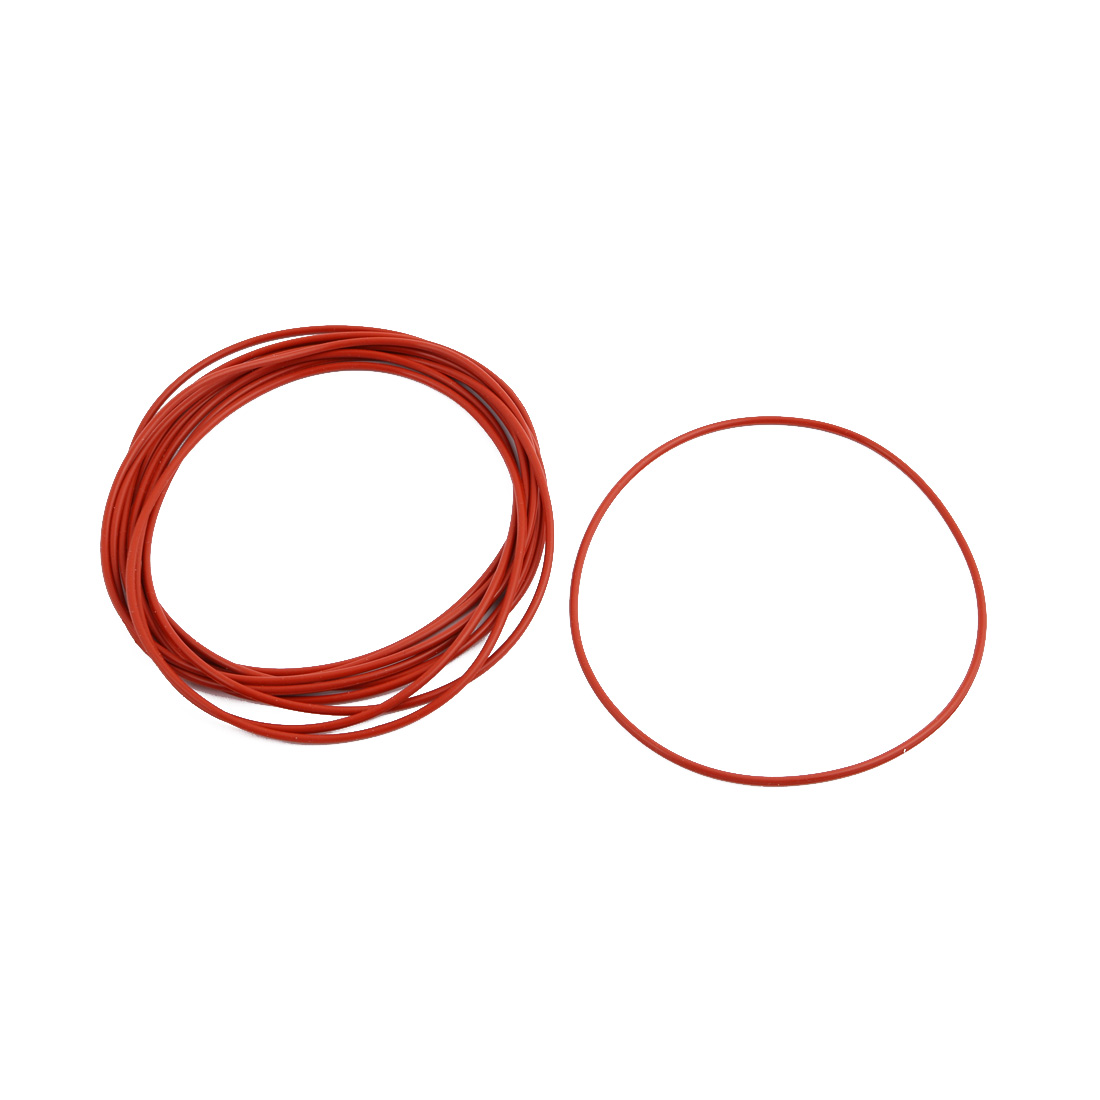 10Pcs Red Round Nitrile Butadiene Rubber NBR O-Ring 95mm OD 1.9mm Width